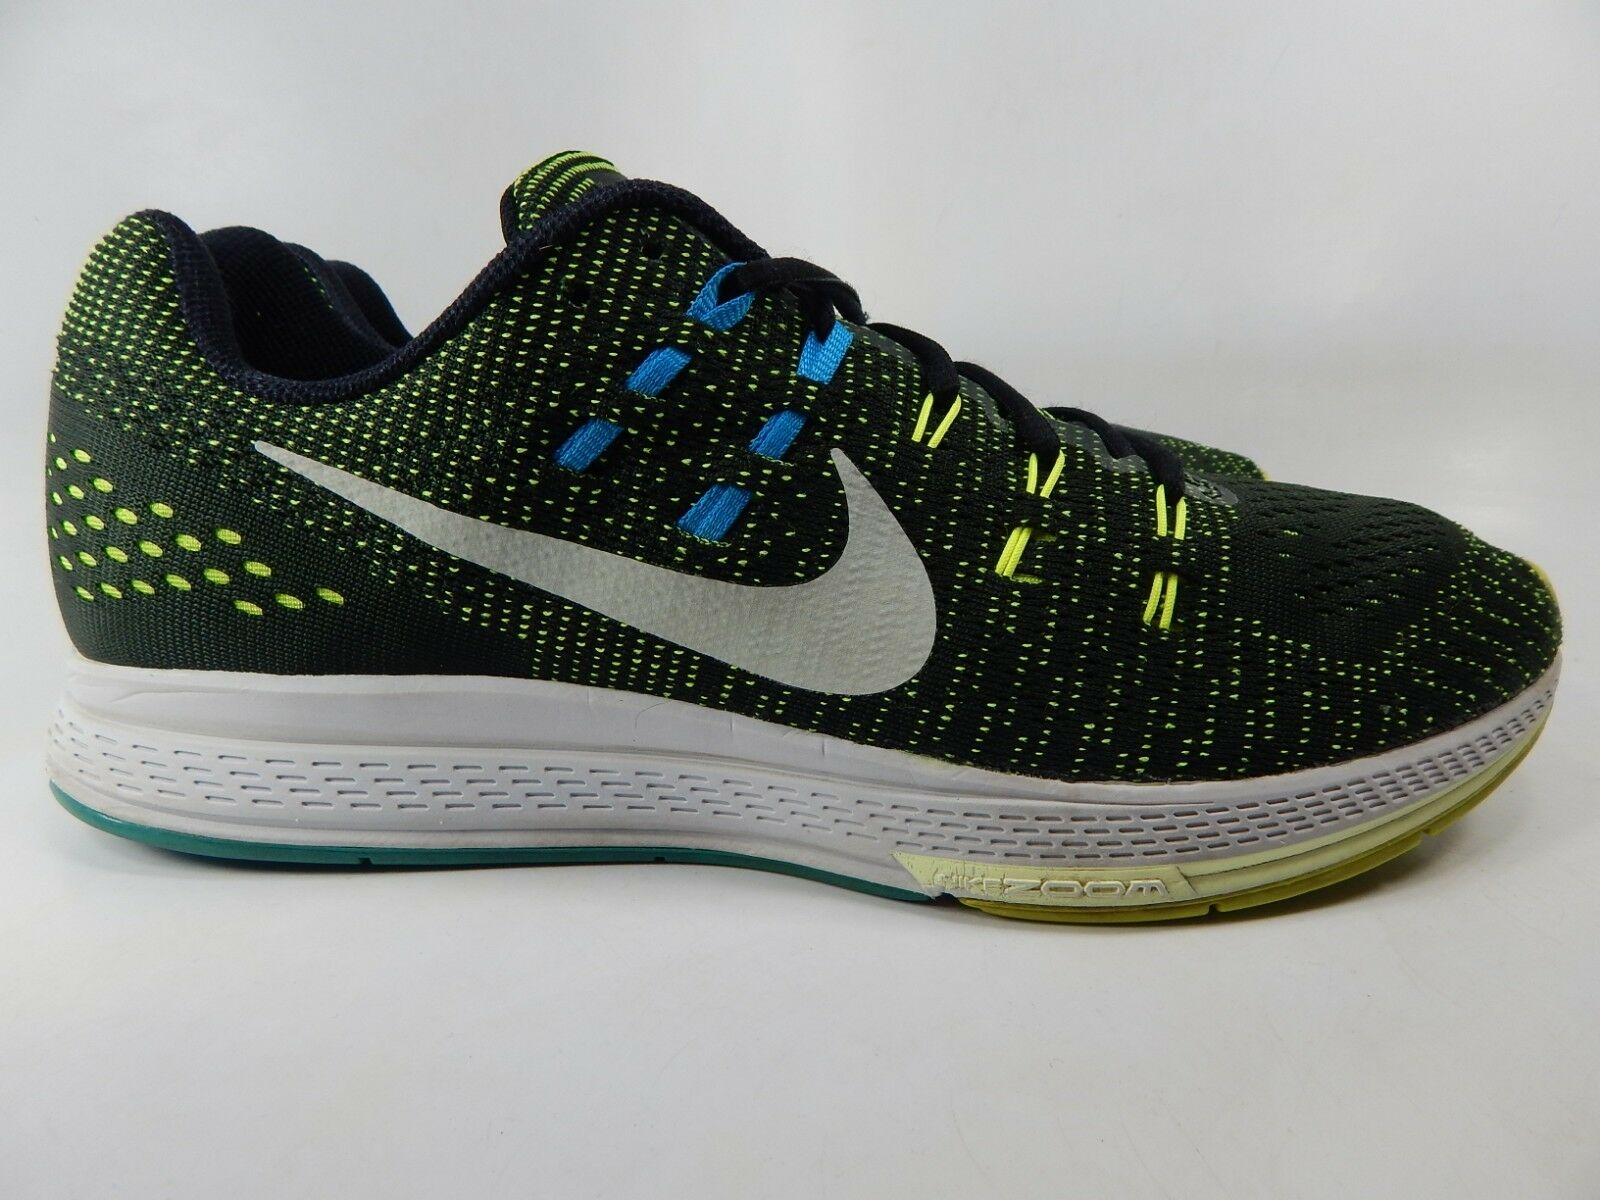 Nike Air Zoom Structure 19 Size 13 M (D) Men's Running shoes 806580-010